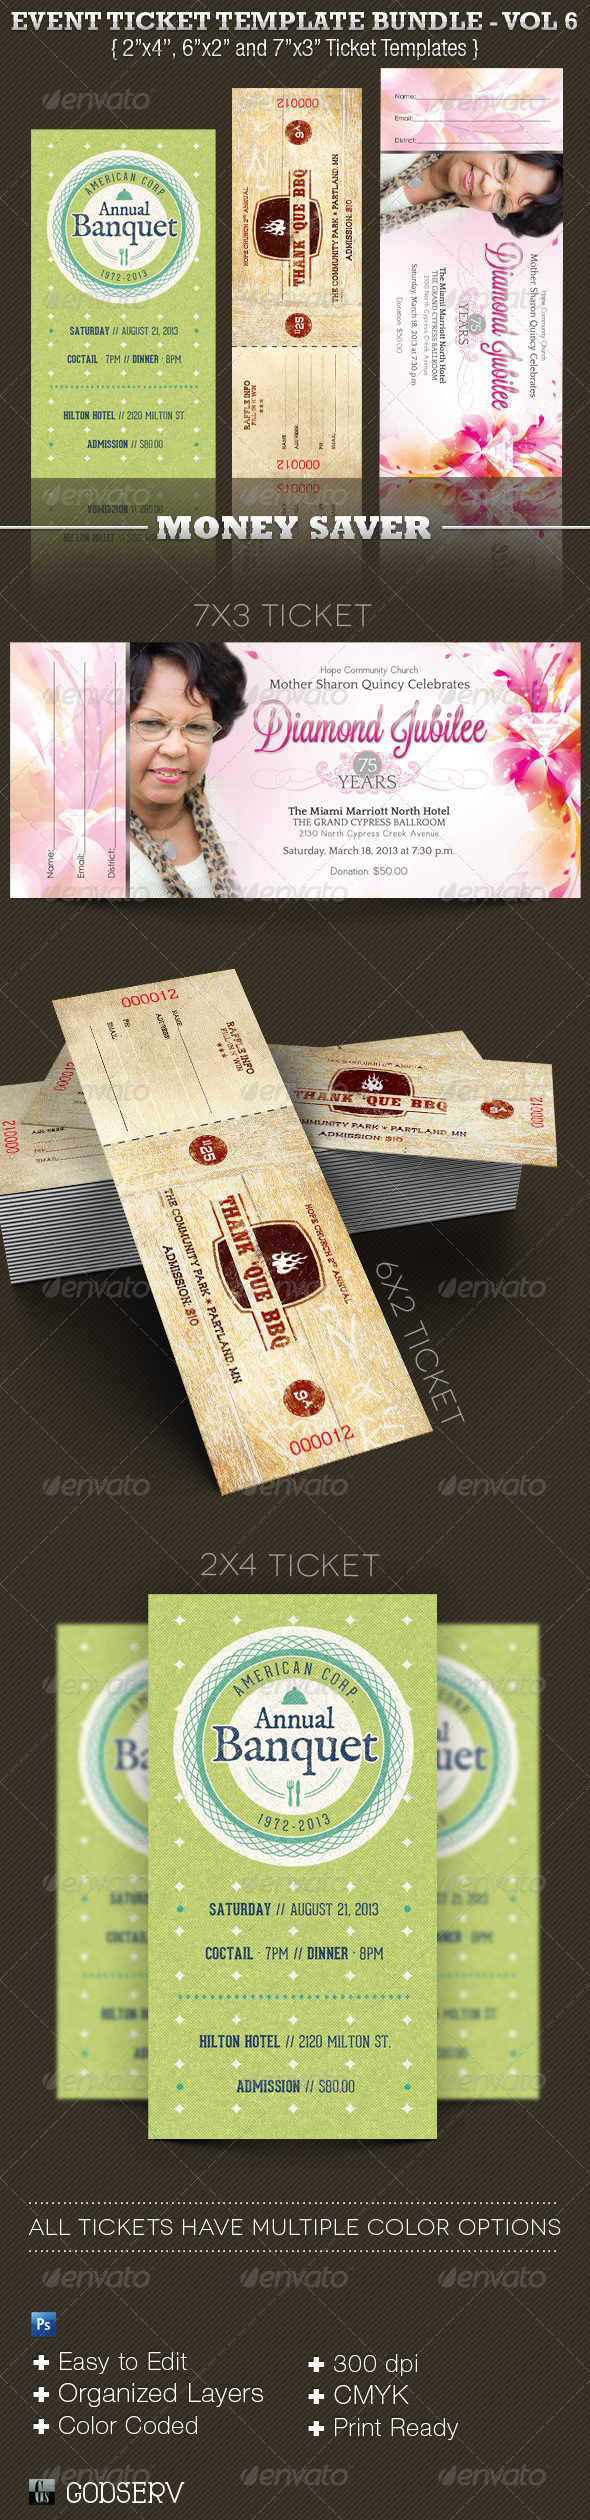 Event Ticket Template Bundle Volume 6  - Miscellaneous Print Templates